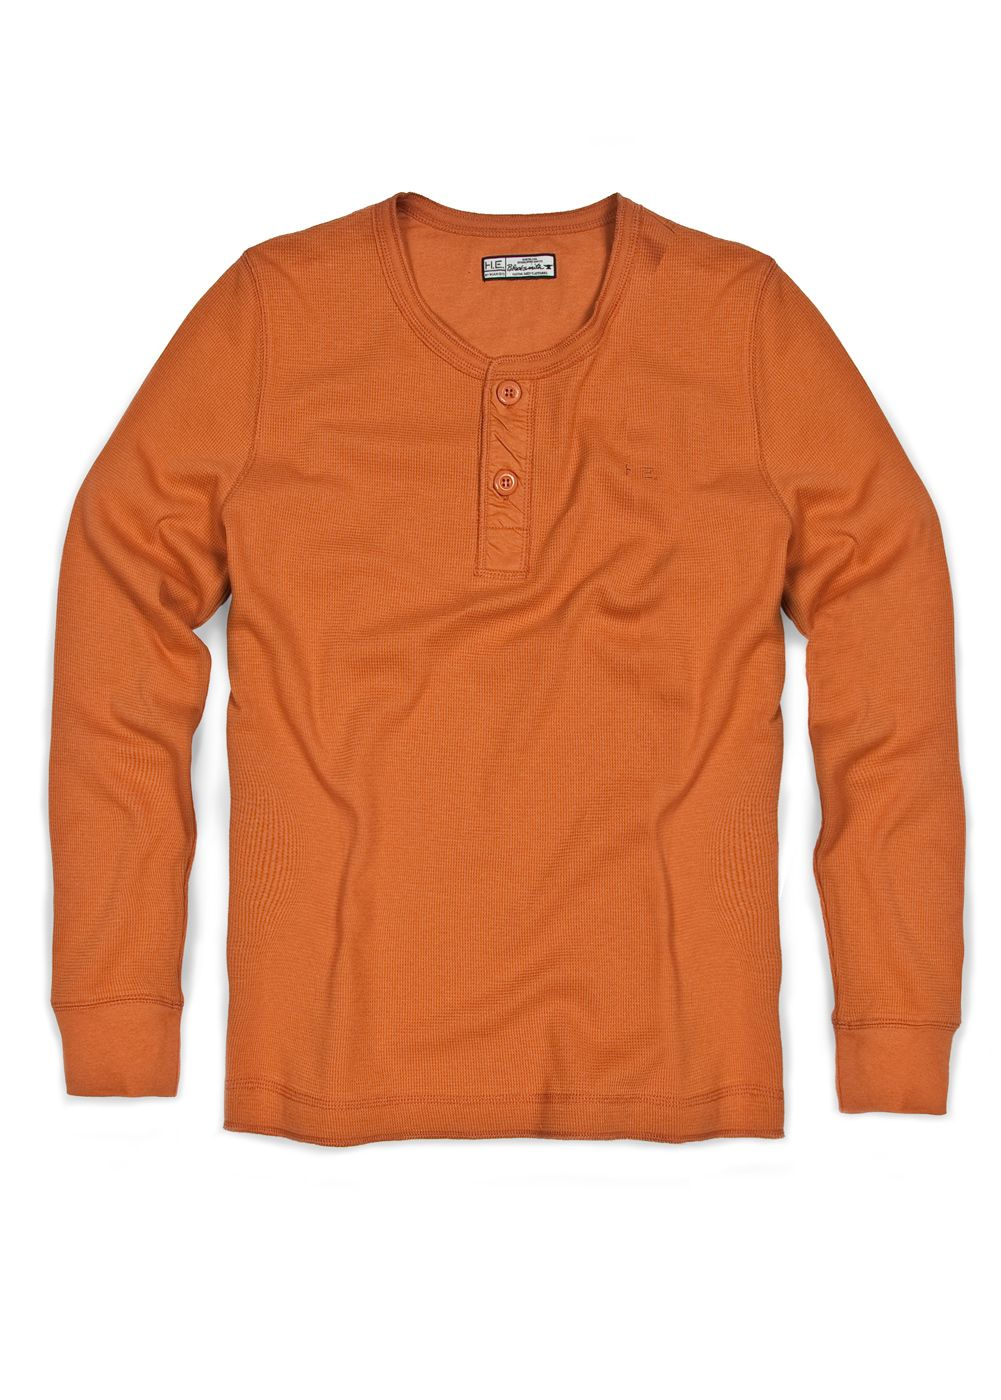 Mango Mens Mango Cotton henley t-shirt, Orange product image